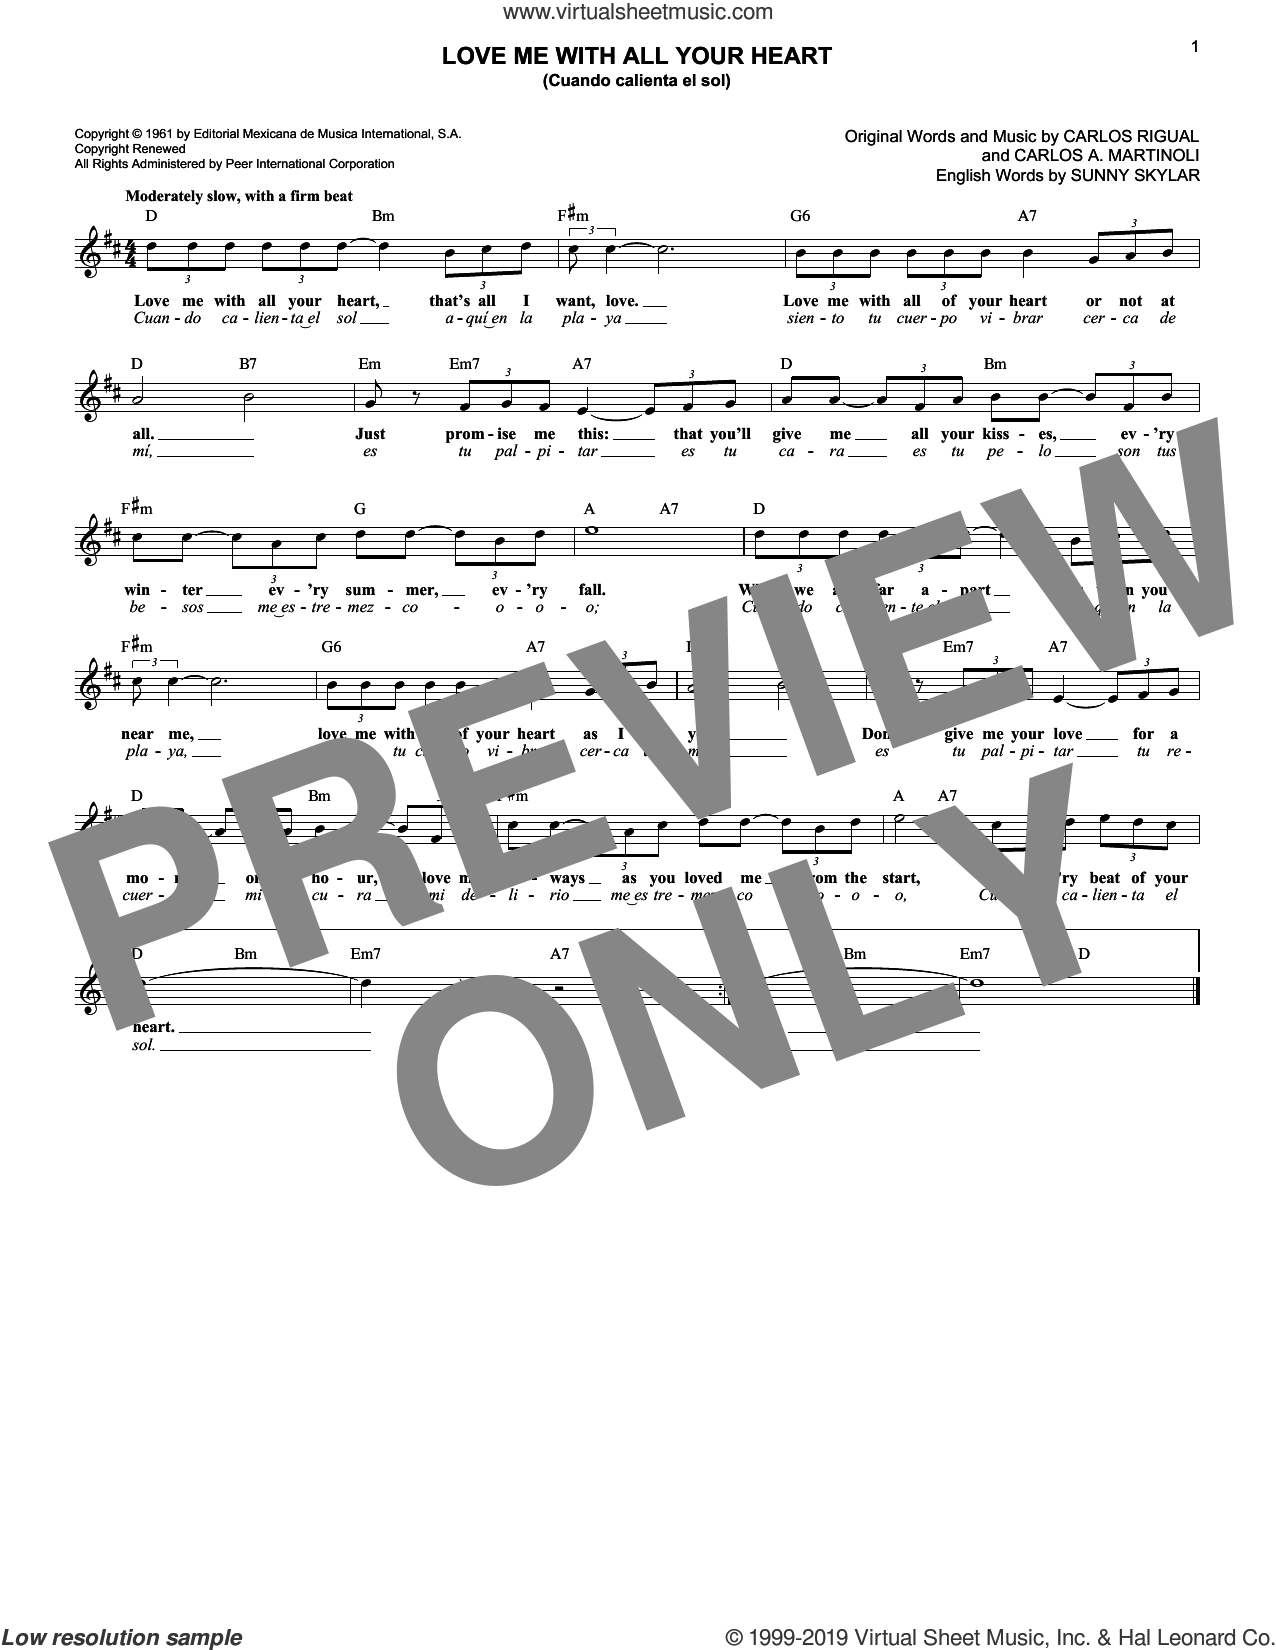 Love Me With All Your Heart (Cuando Calienta El Sol) sheet music for voice and other instruments (fake book) by Sunny Skylar, The Ray Charles Singers, Carlos A. Martinoli and Carlos Rigual, intermediate skill level